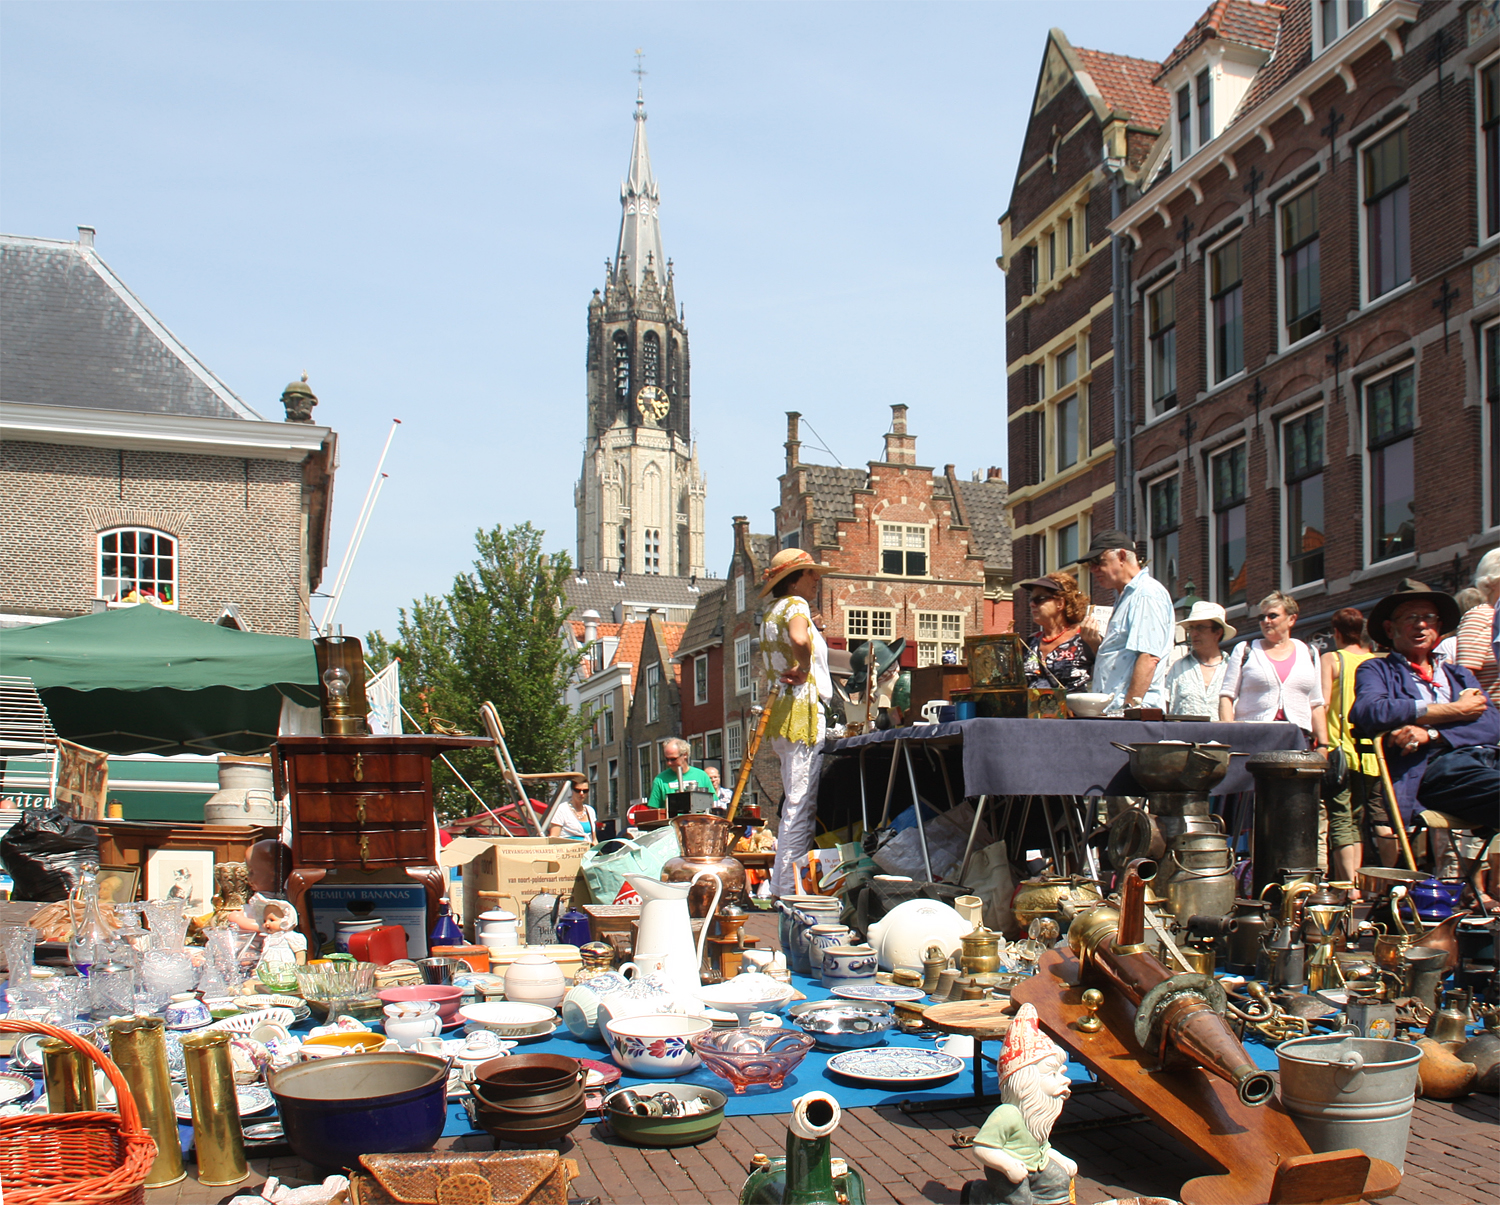 flohmarkt in delft explore reisen aus leidenschaft 39 s photo flickr photo sharing. Black Bedroom Furniture Sets. Home Design Ideas